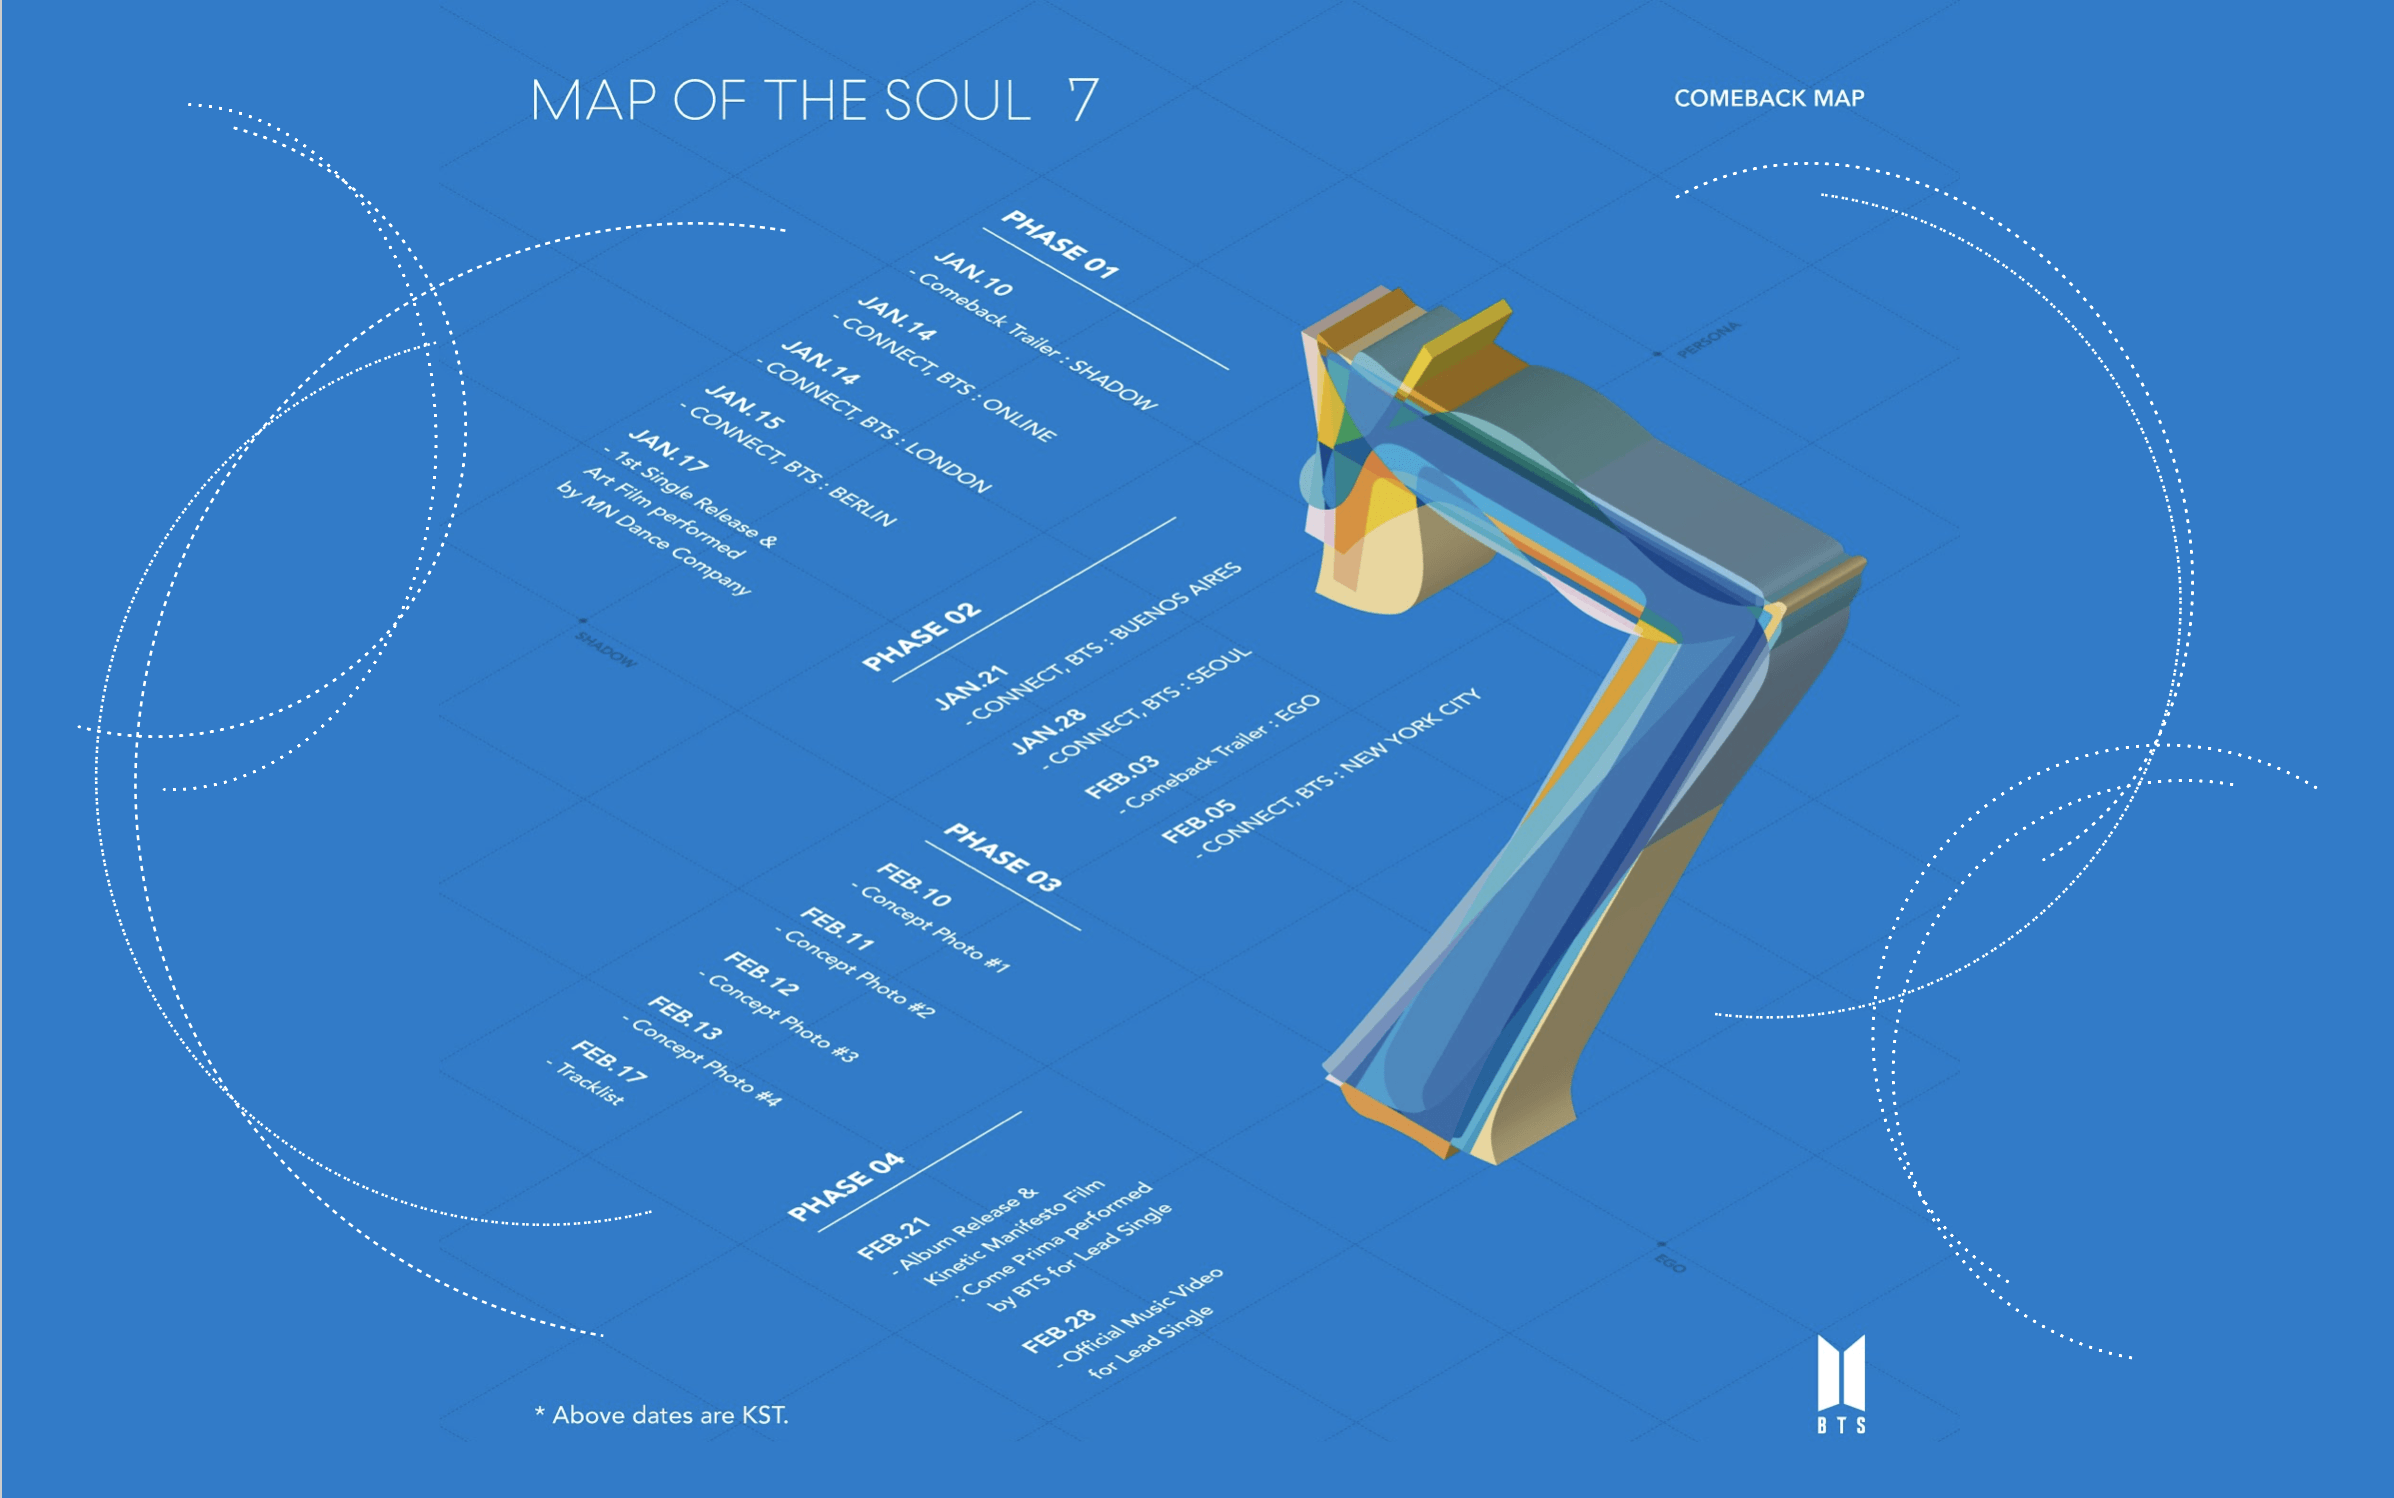 Bts Map Of The Soul 7 Desktop Wallpapers Wallpaper Cave